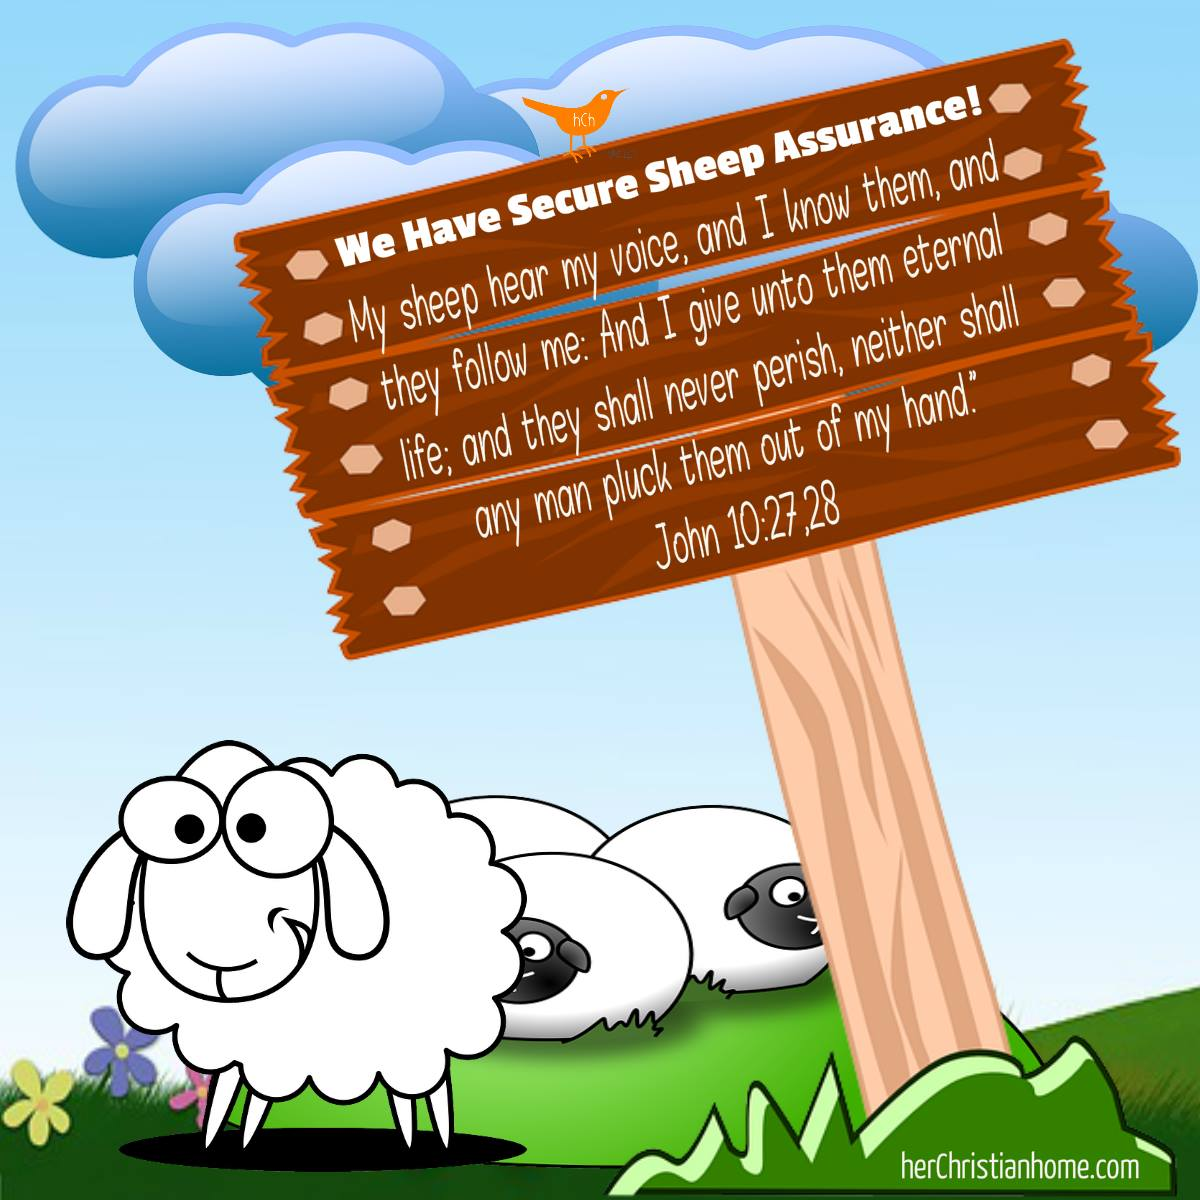 Does Your Faith Include Secure Sheep Assurance?